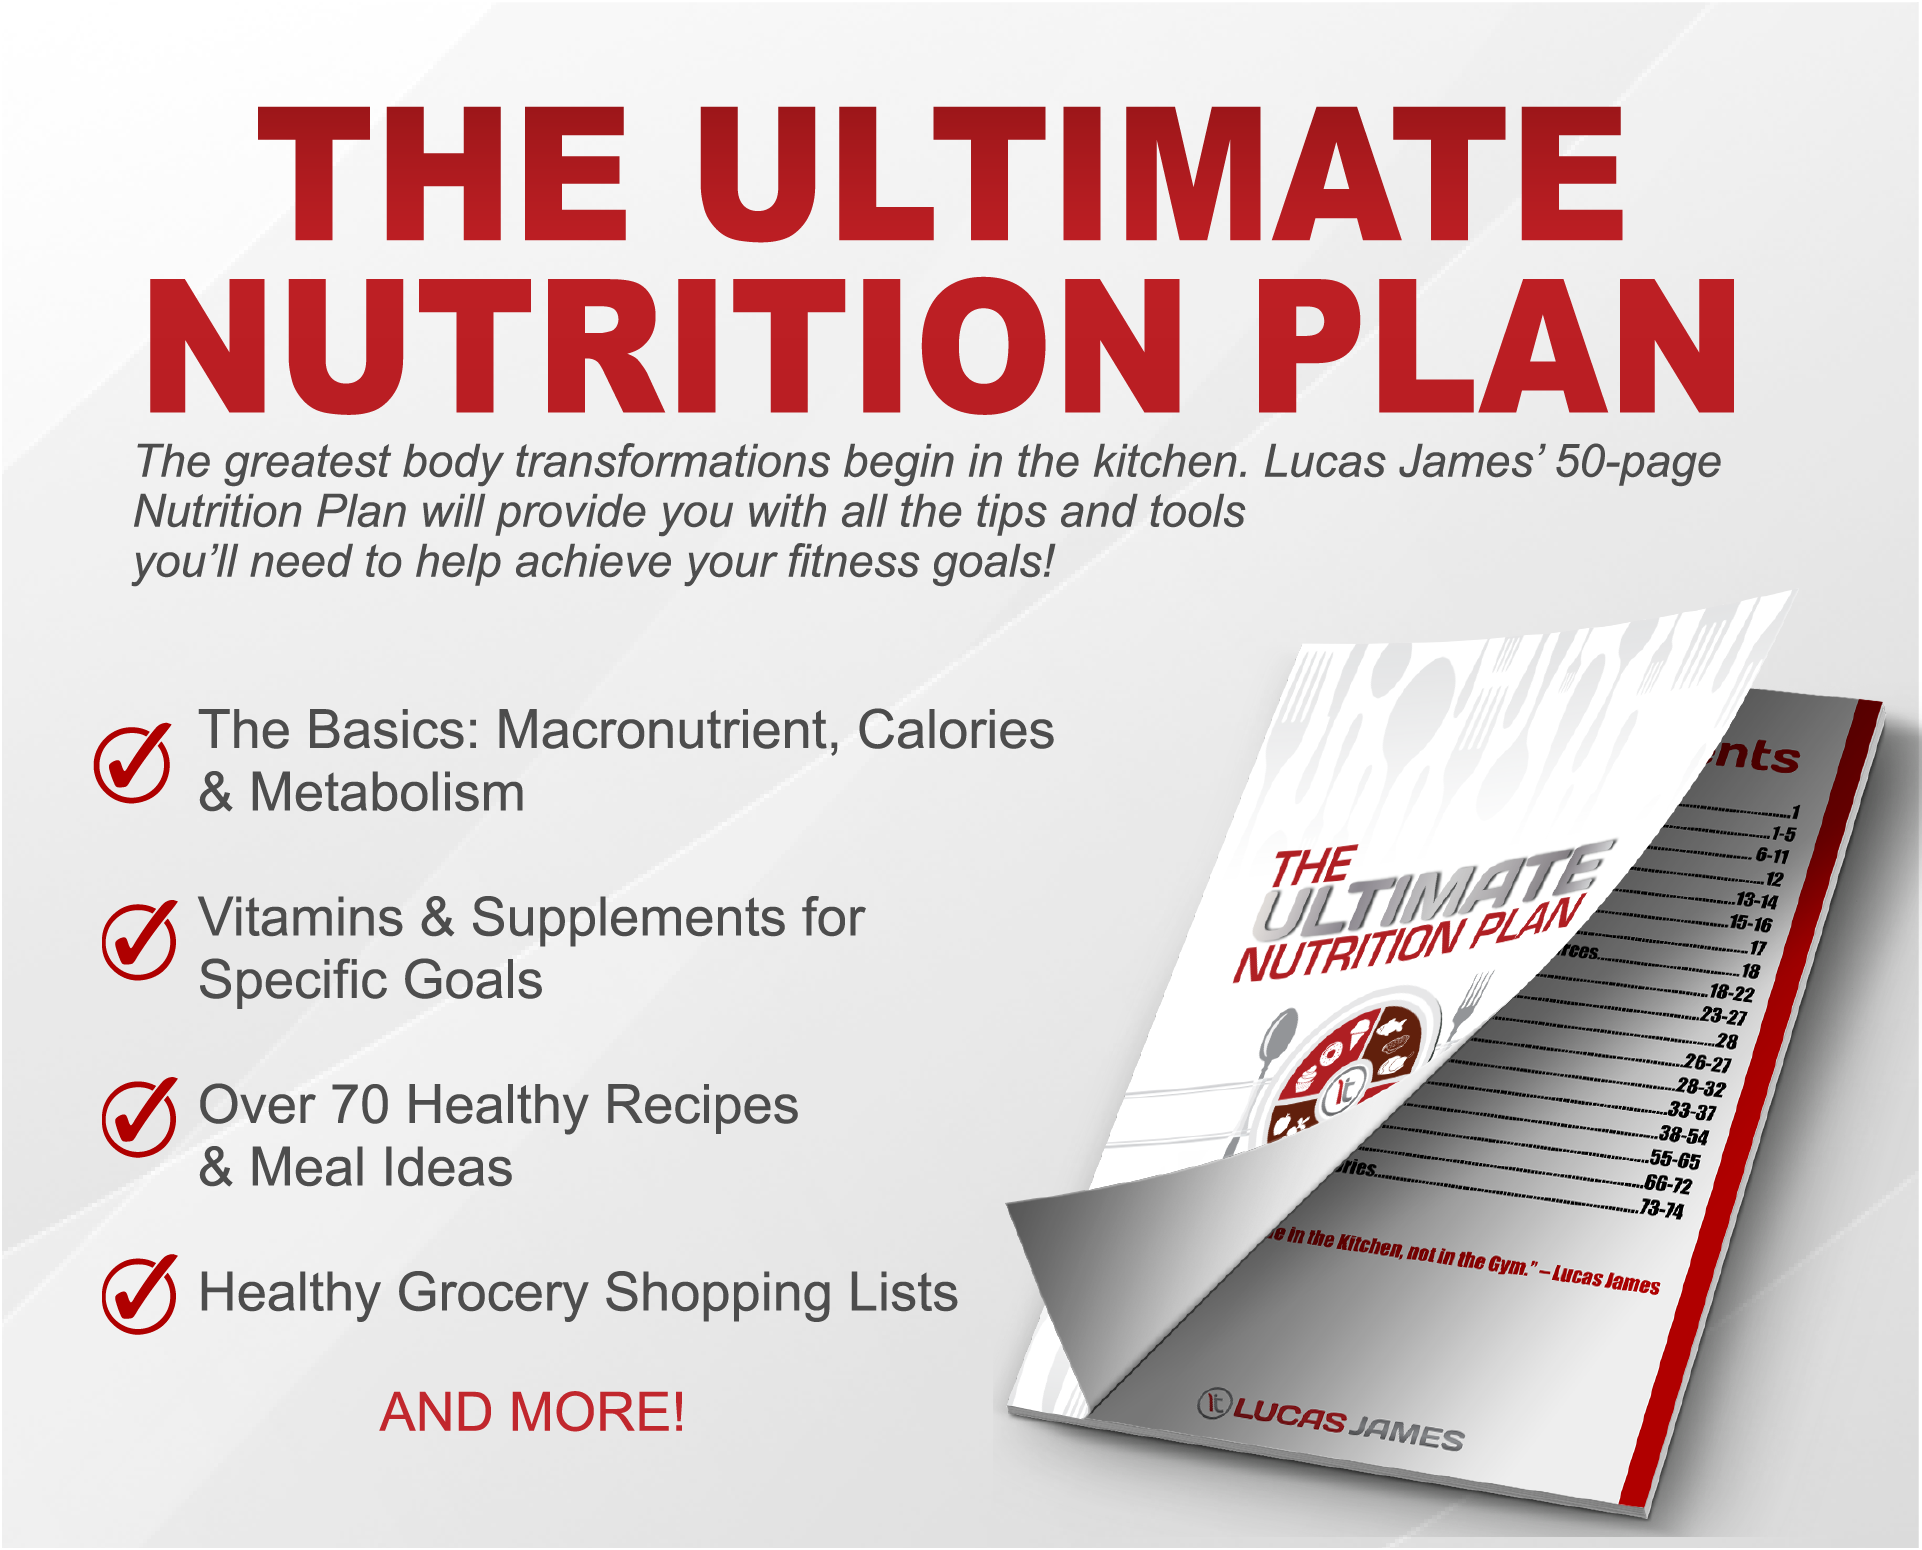 The Ultimate Nutrition Plan